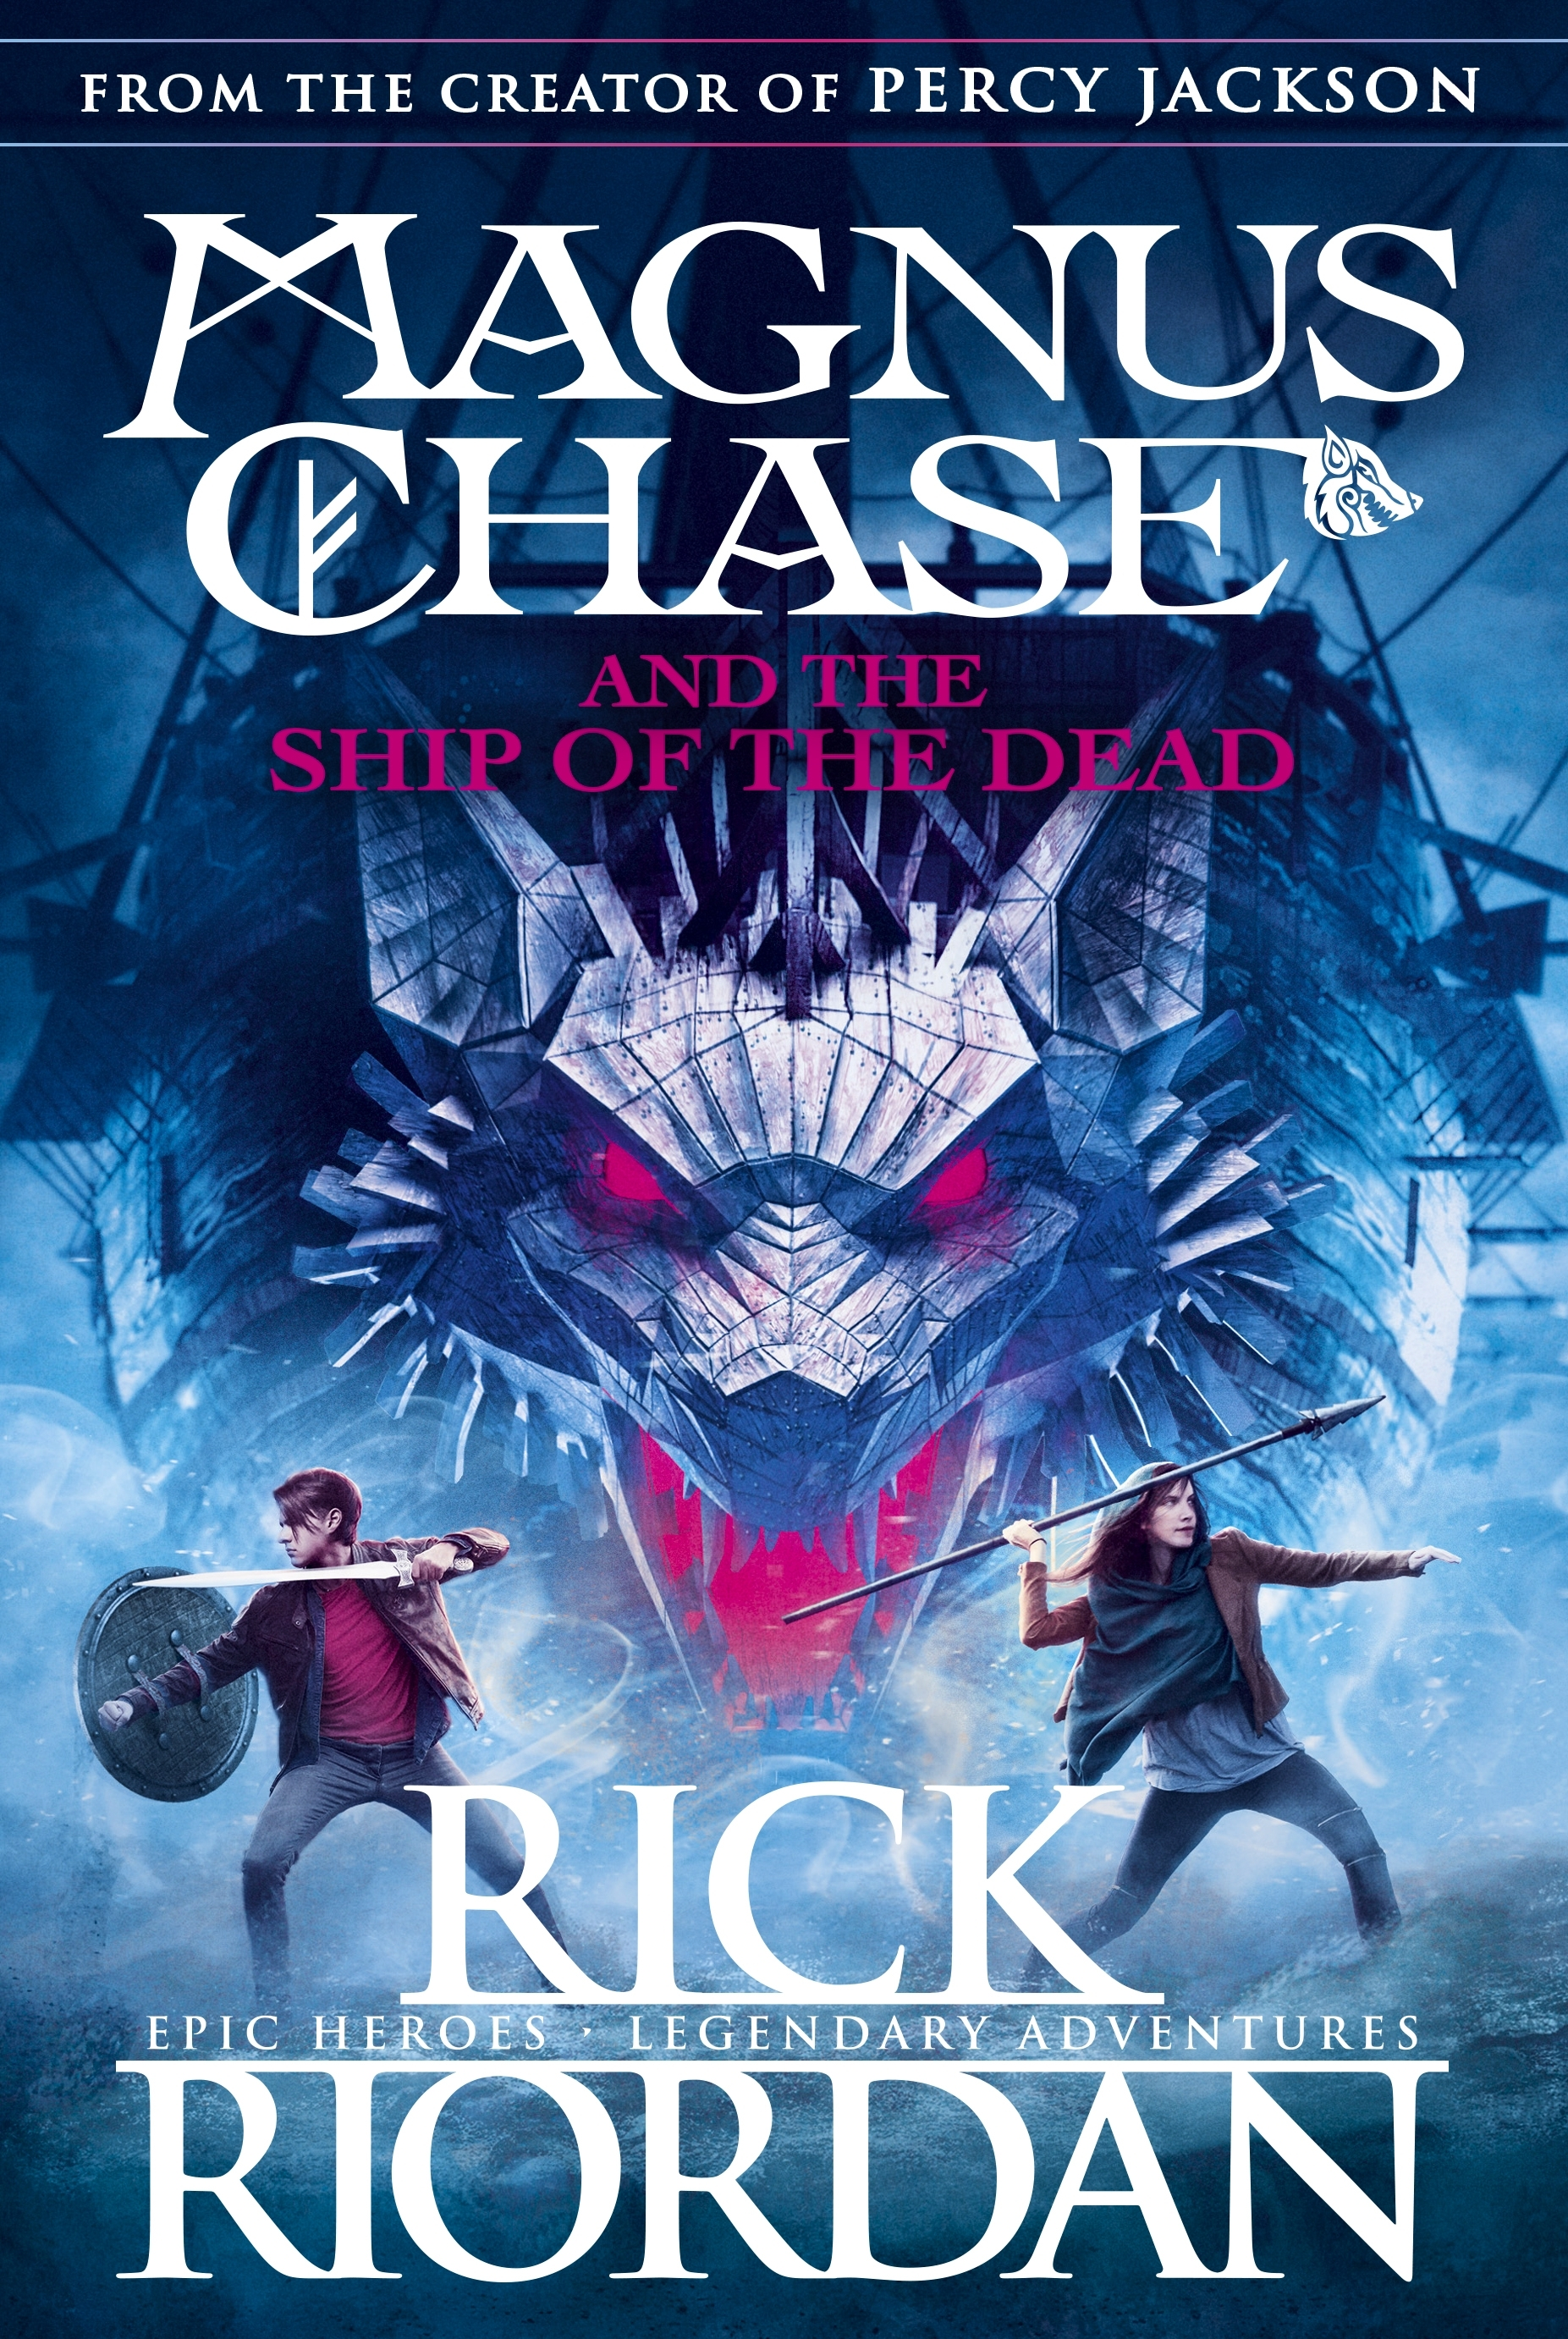 magnus chase book 1 pdf free download Magnus Chase And The Ship Of The Dead (Book 3) by Rick Riordan ...